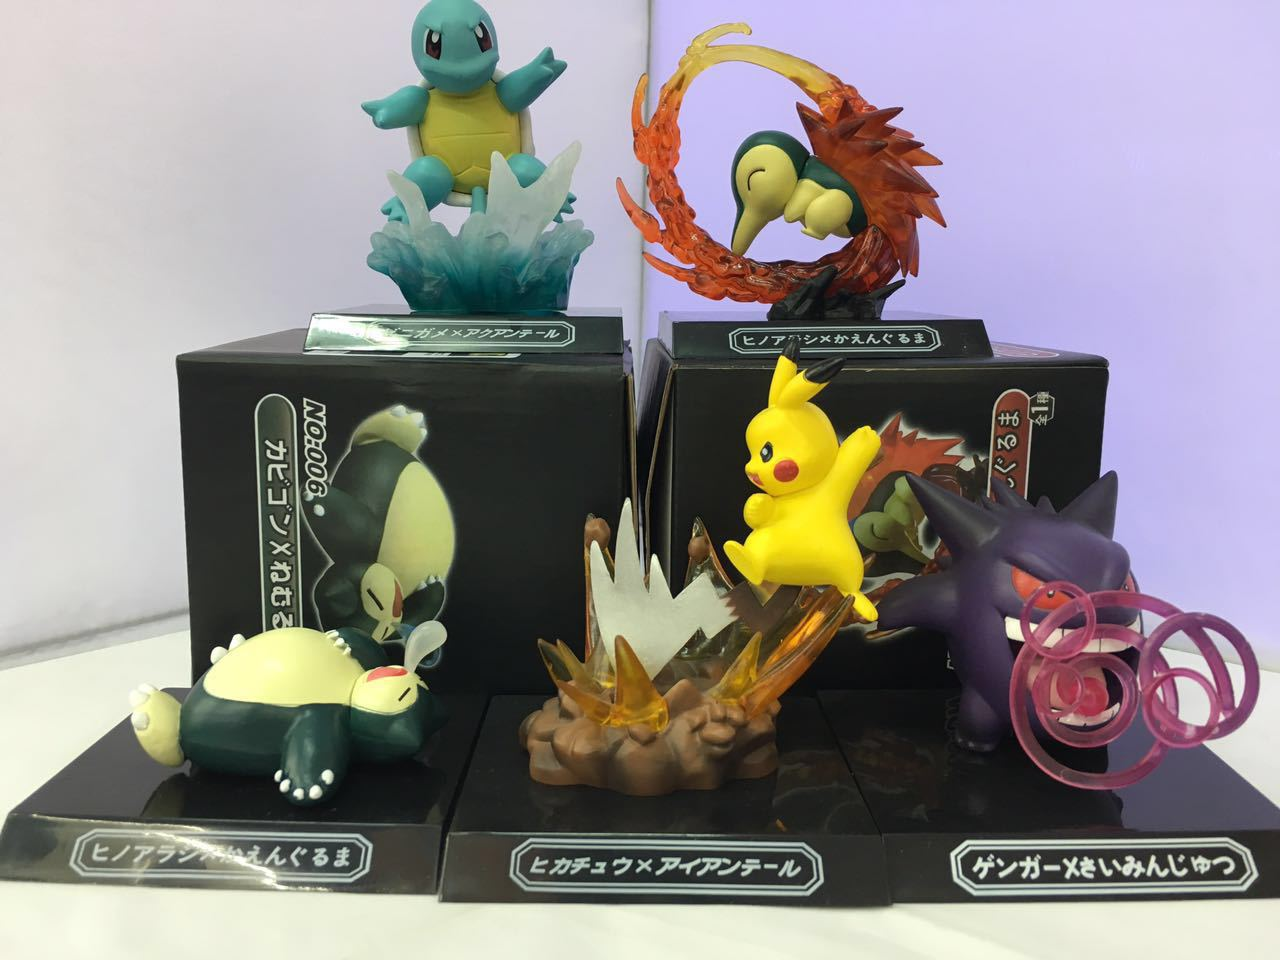 WVW 4.5-11CM Pocket Monster Cyndaquil Squirtle Snorlax Pikachu Model PVC Toy Action Figure Decoration For Collection Gift 50pcs lot 4 7cm pikachu pvc figure toys cute pocket pikachu mini action figures model toy for children gifts random delivery